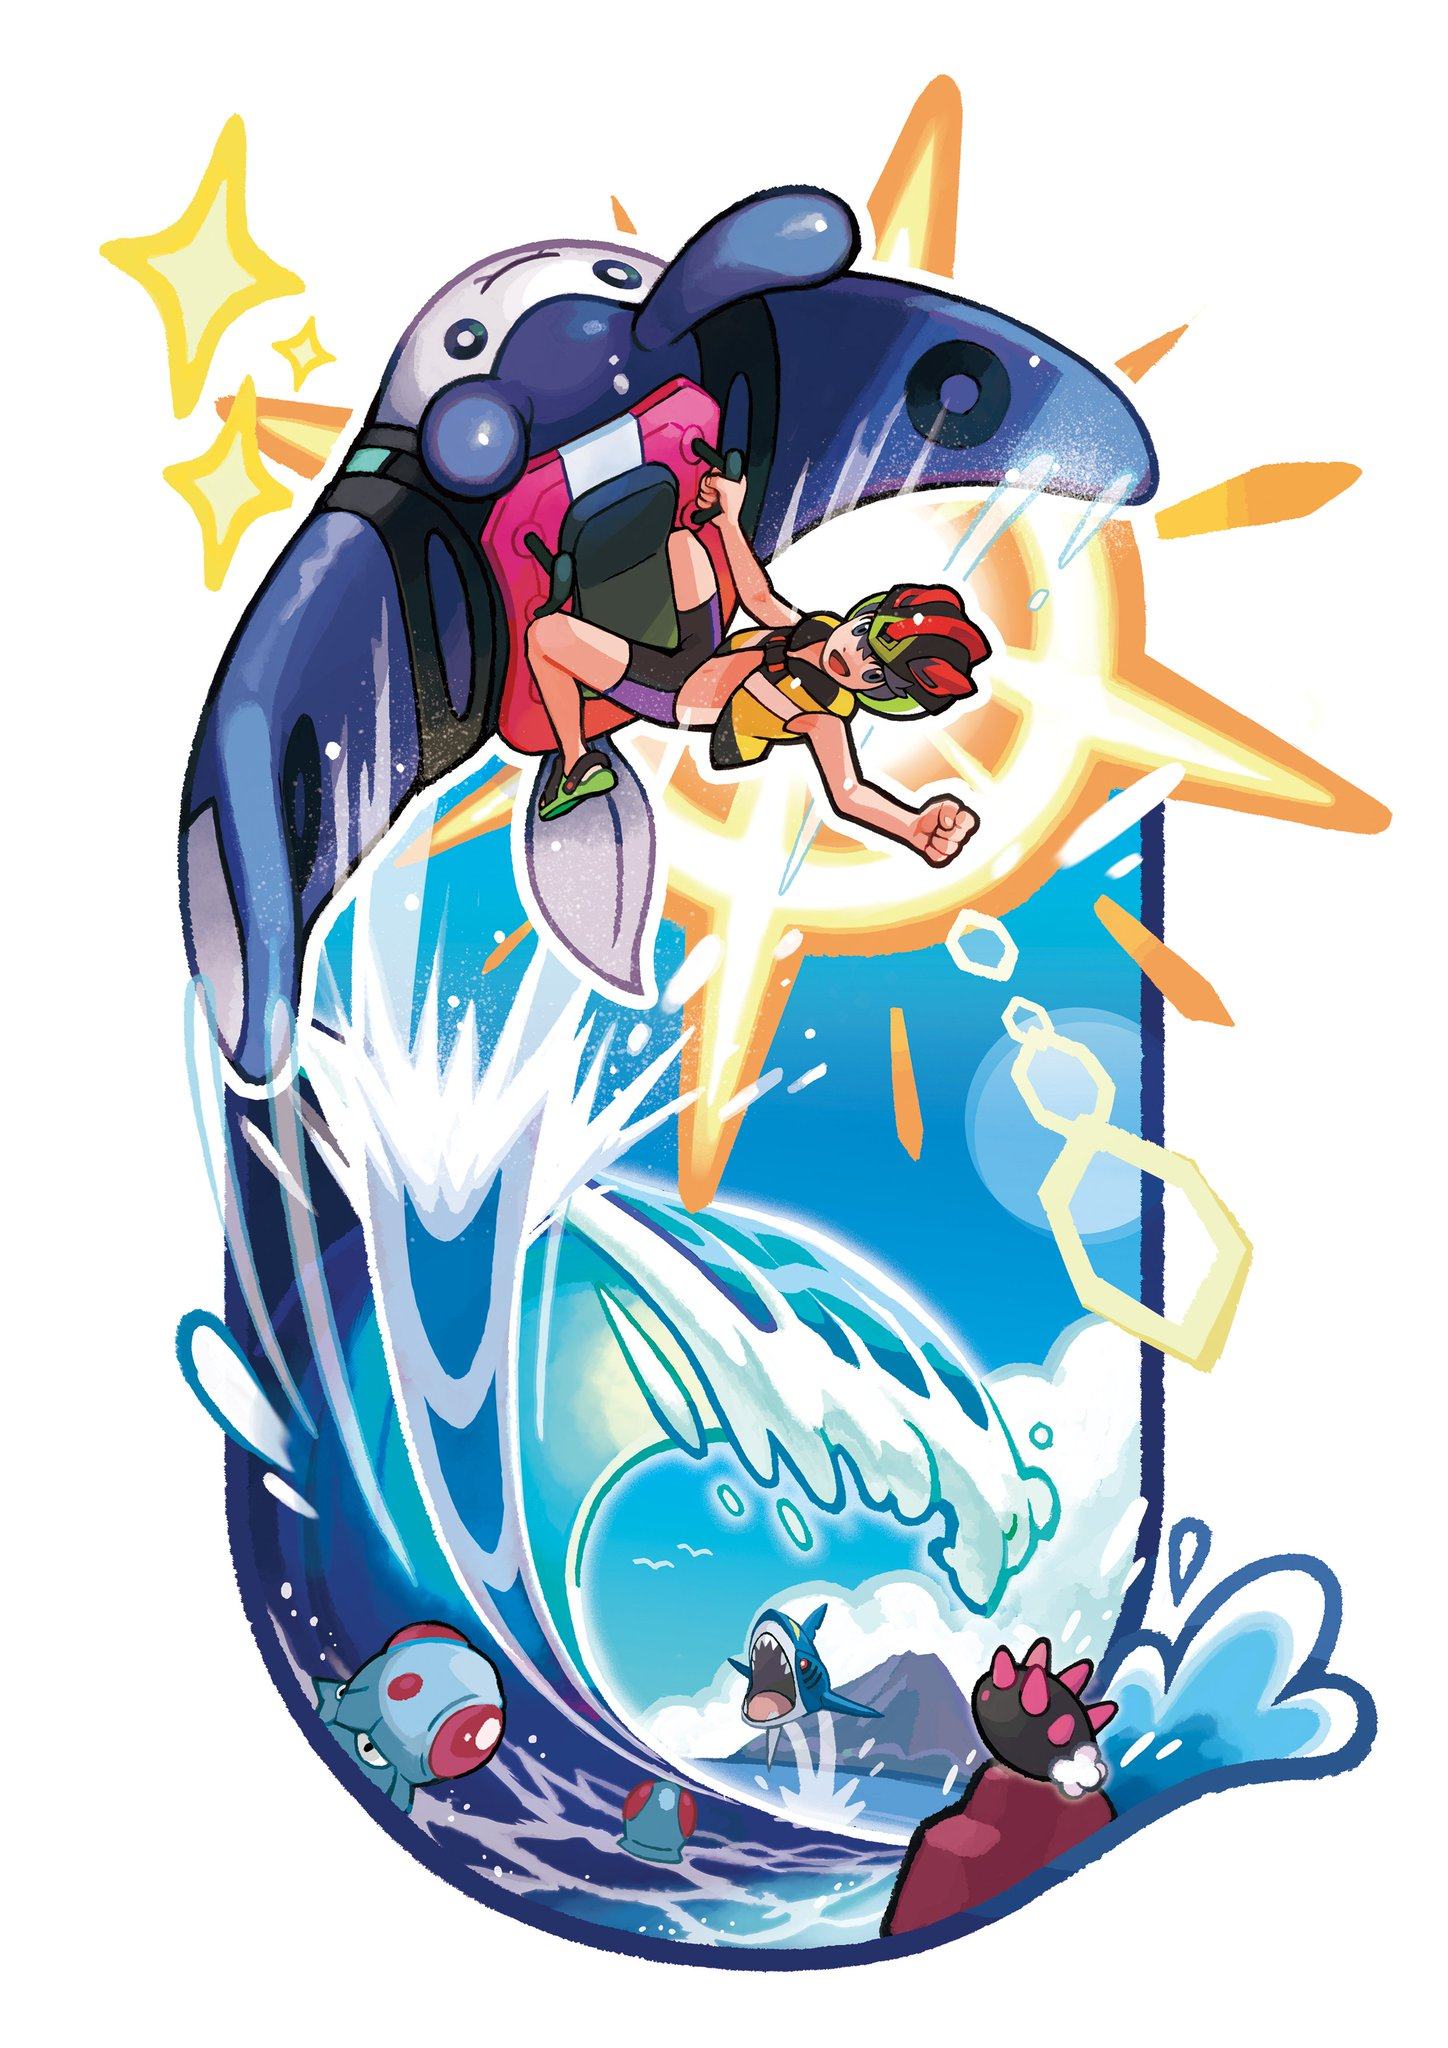 Now that you've had a chance to catch some waves in #PokemonUltraSunMoon, what is your highest Mantine Surf score? https://t.co/ZPPi73apKU